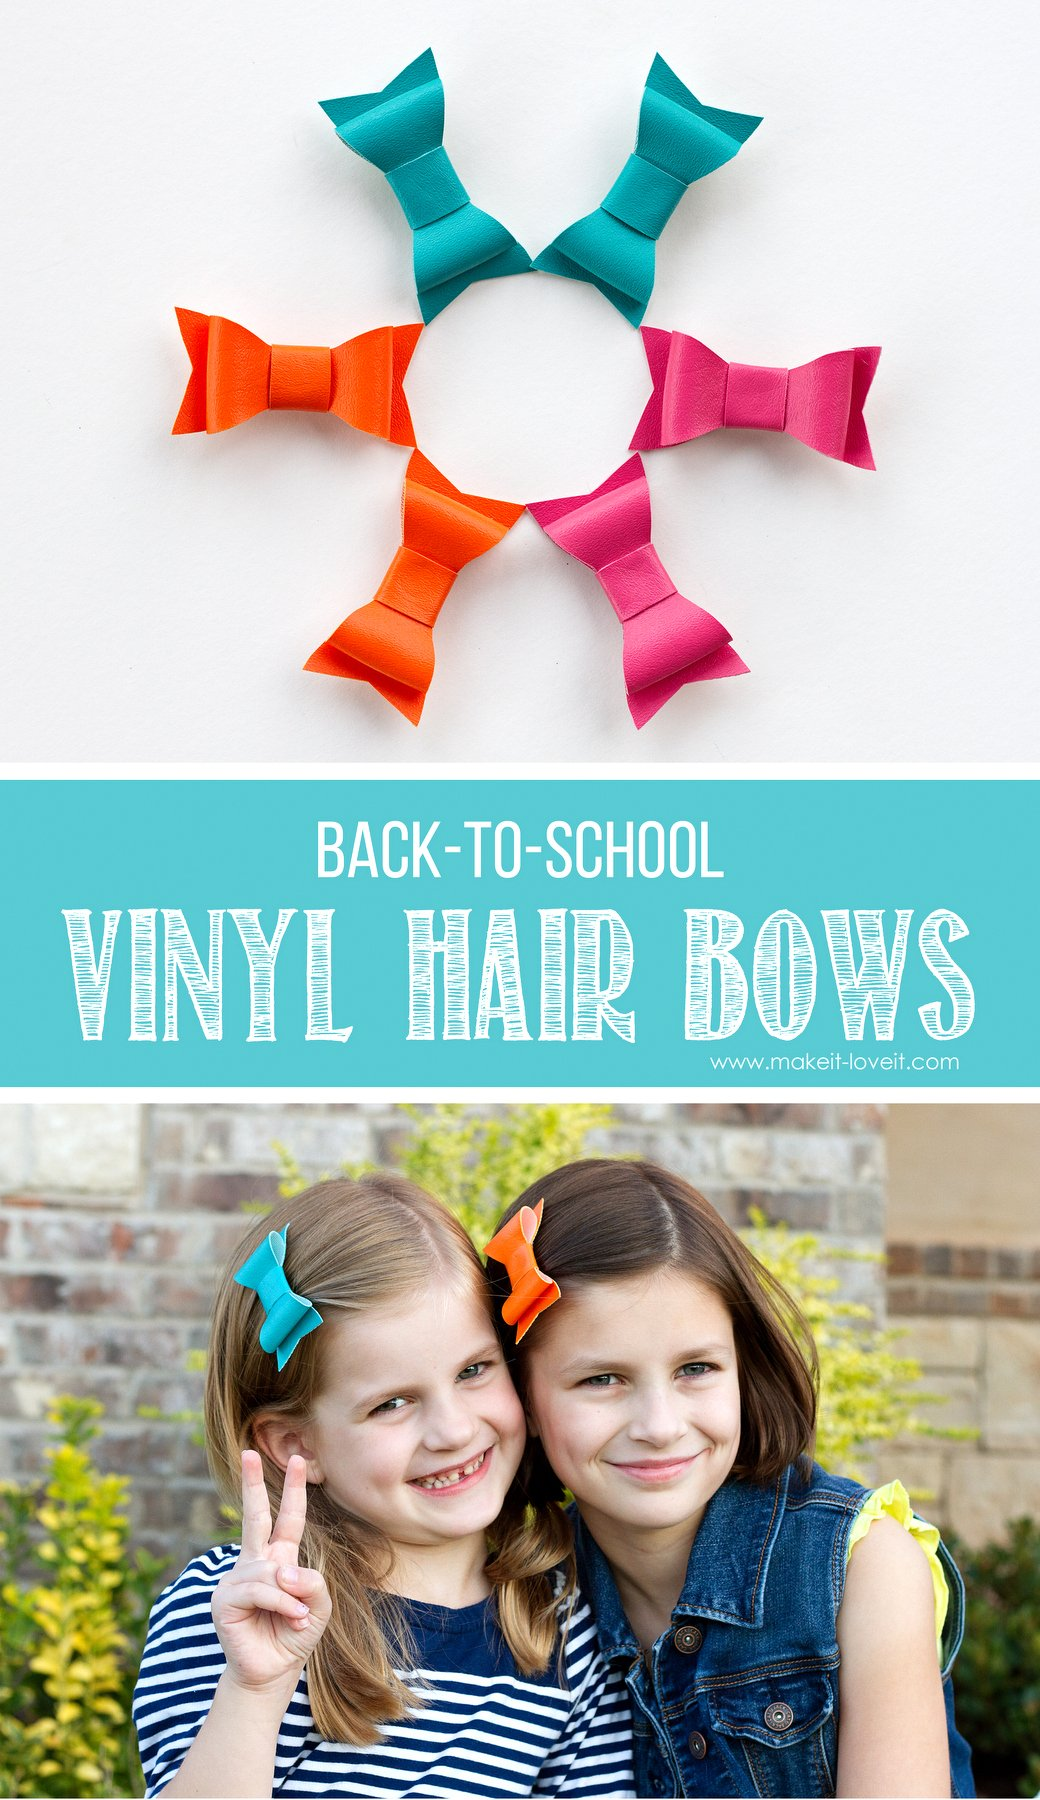 Diy vinyl hair bows…for back-to-school!!